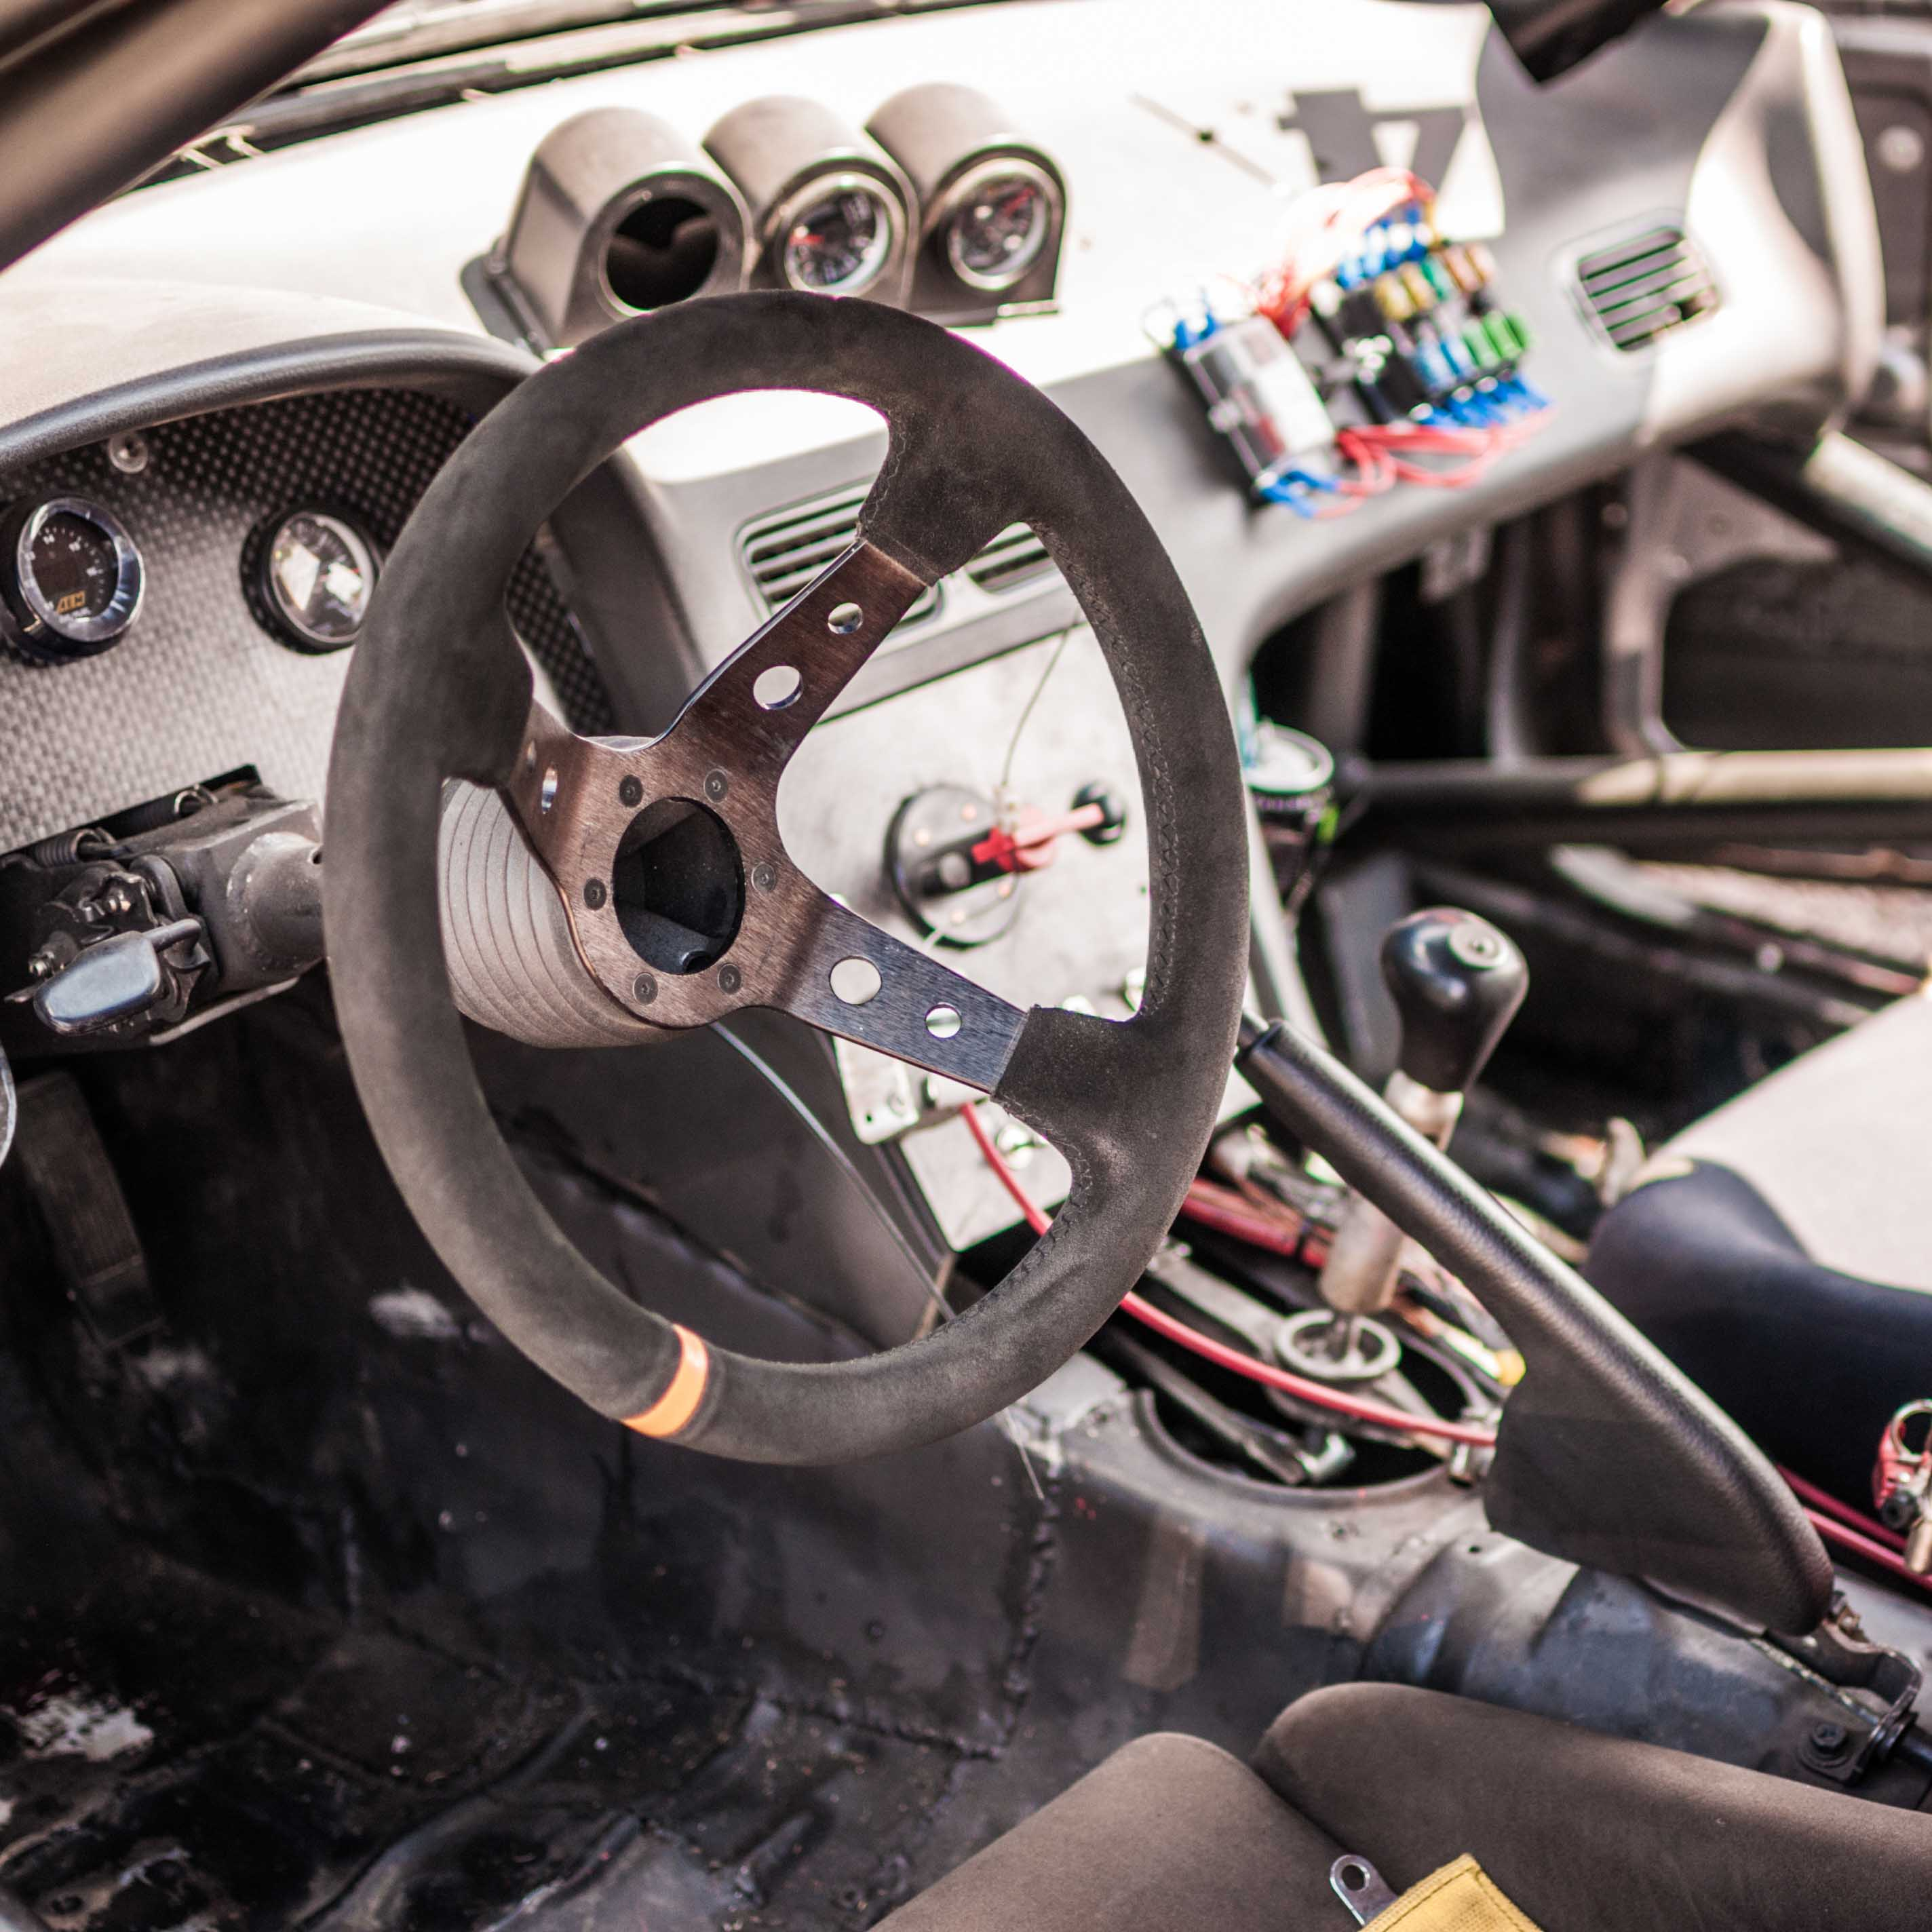 Racecar Driving Opens in new window